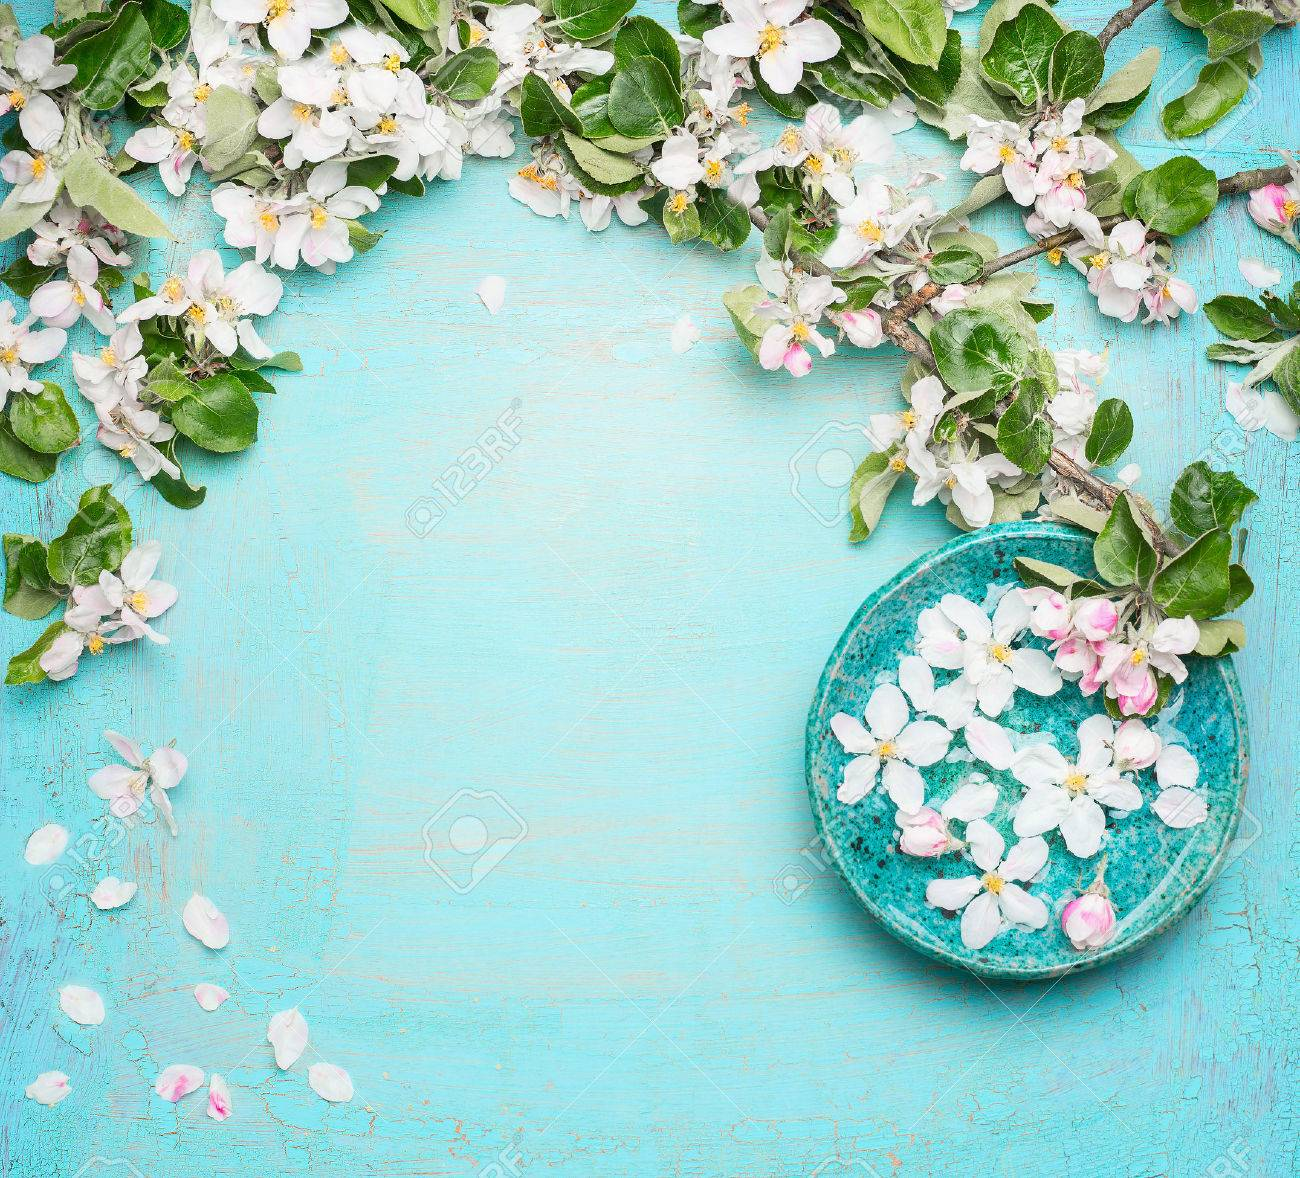 Spa Or Wellness Turquoise Background With Blossom And Water Stock